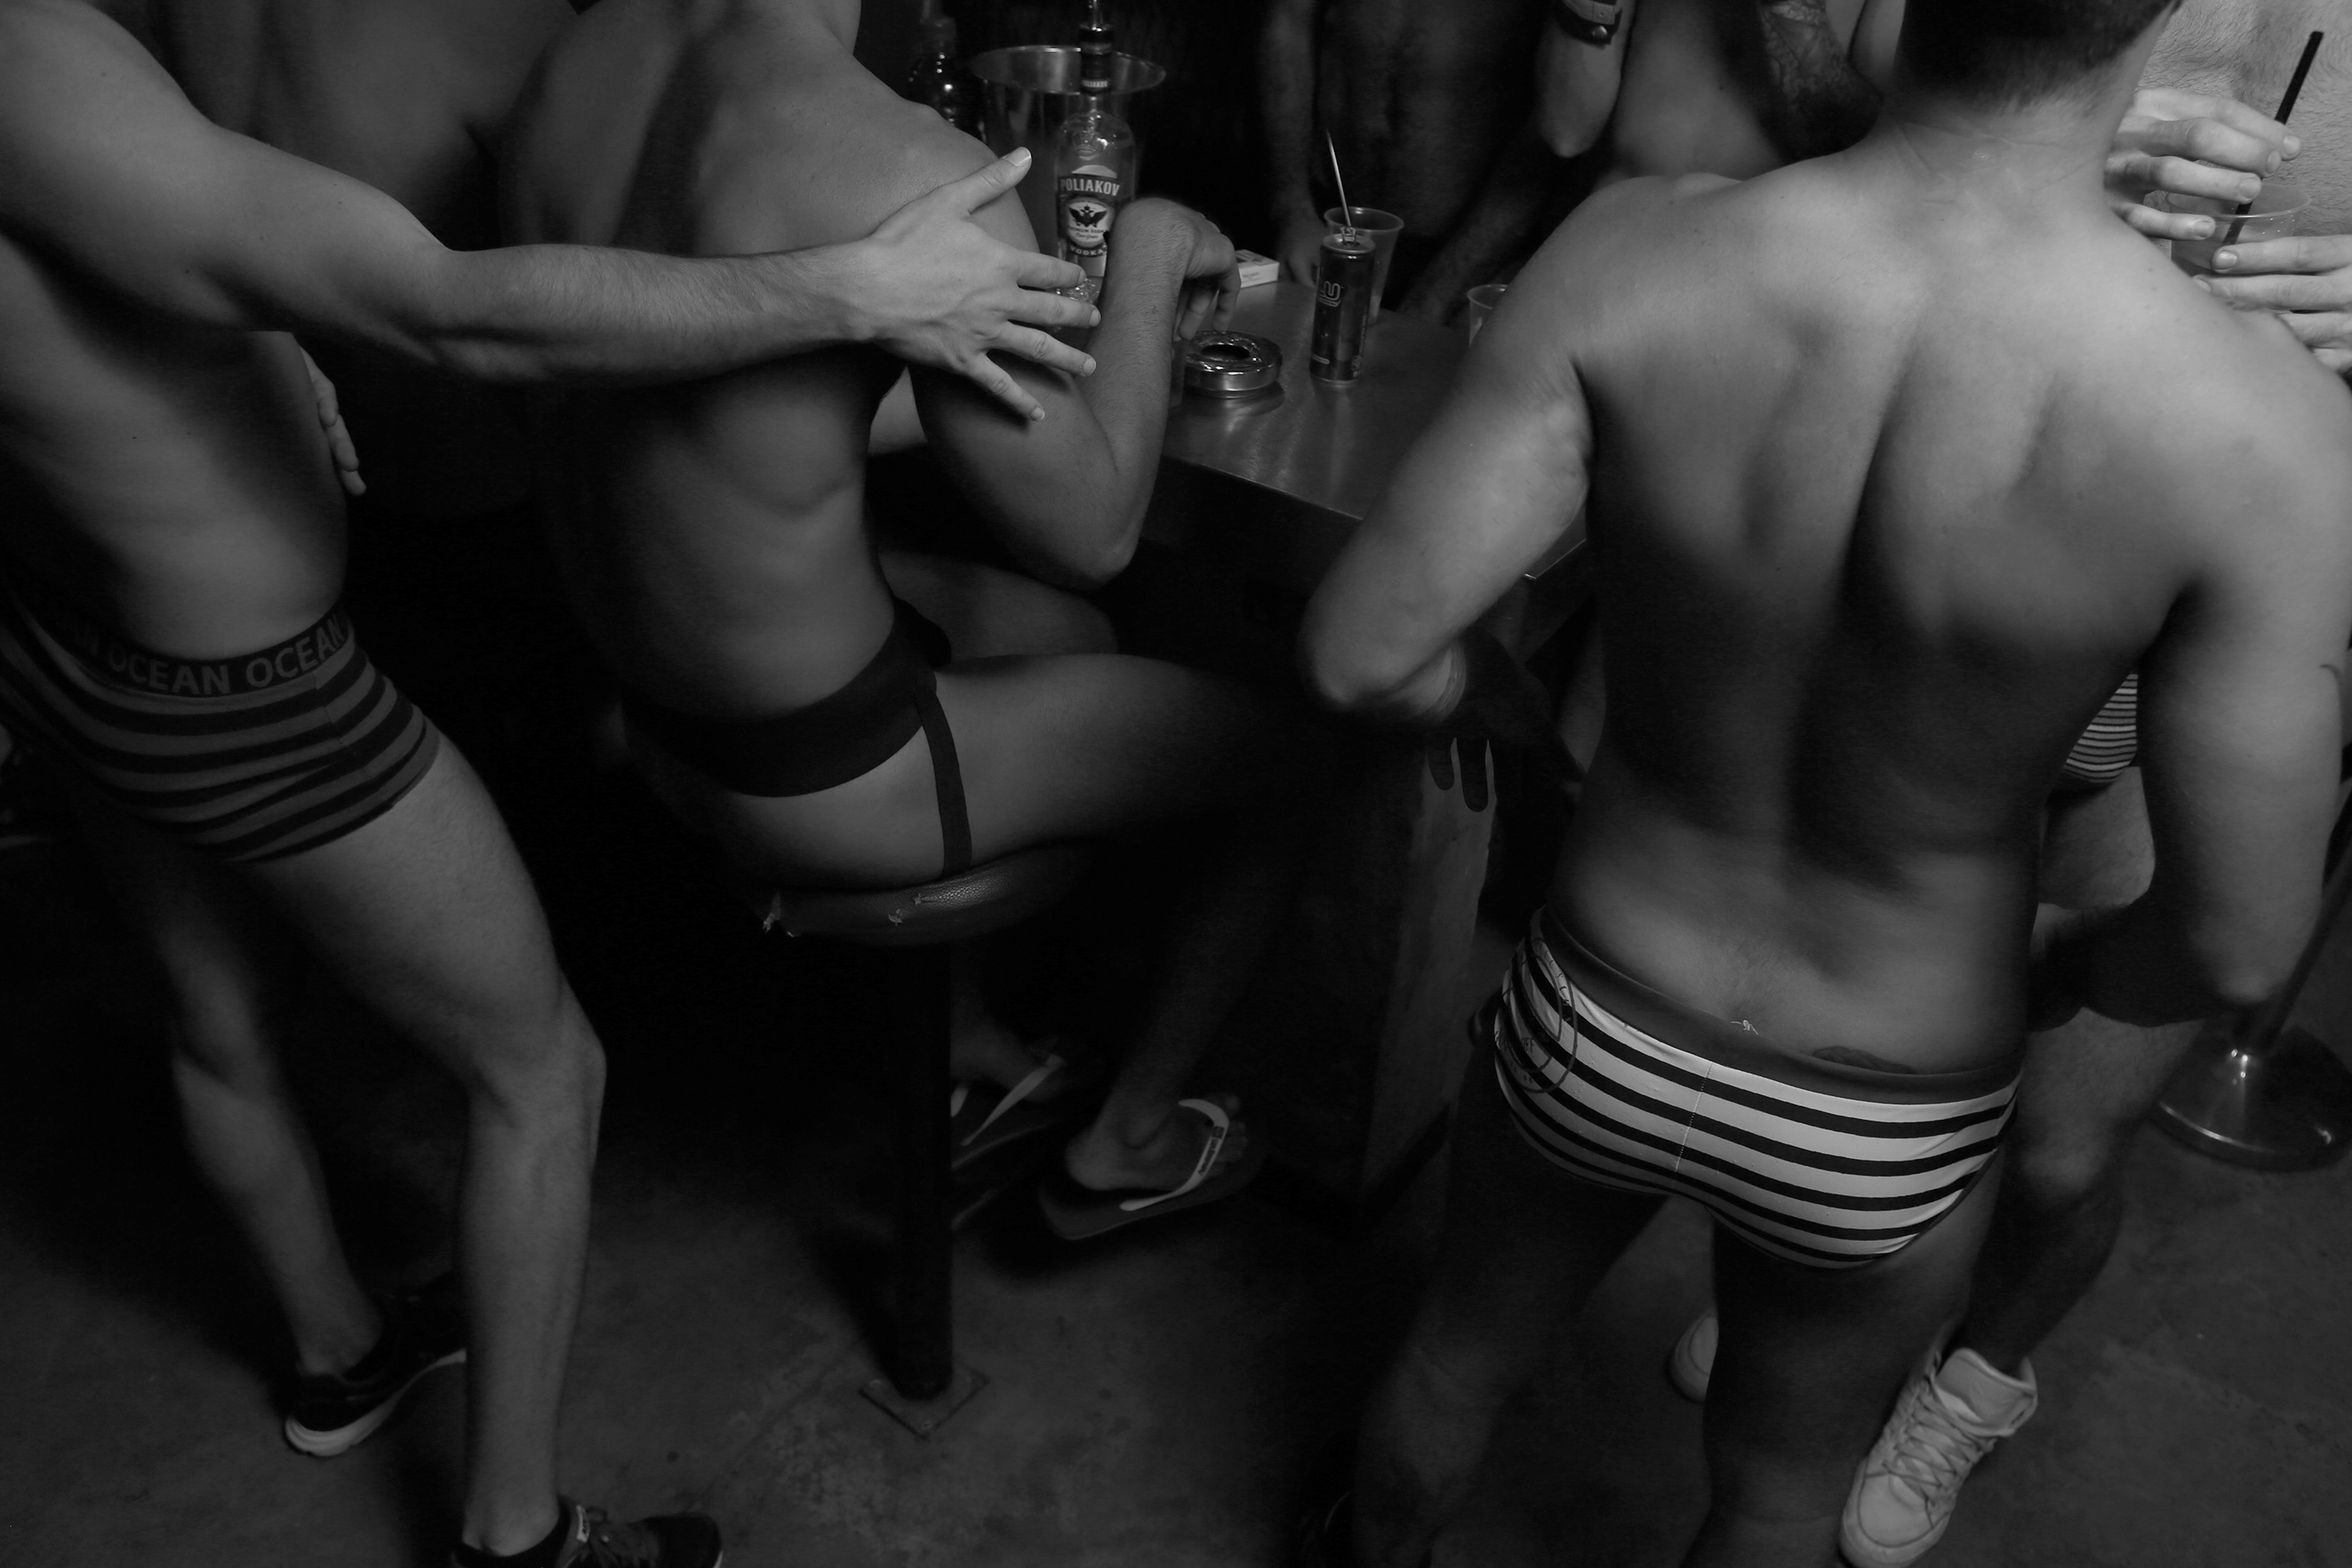 Secret seduction: Israel's more secret & sordid gay spots